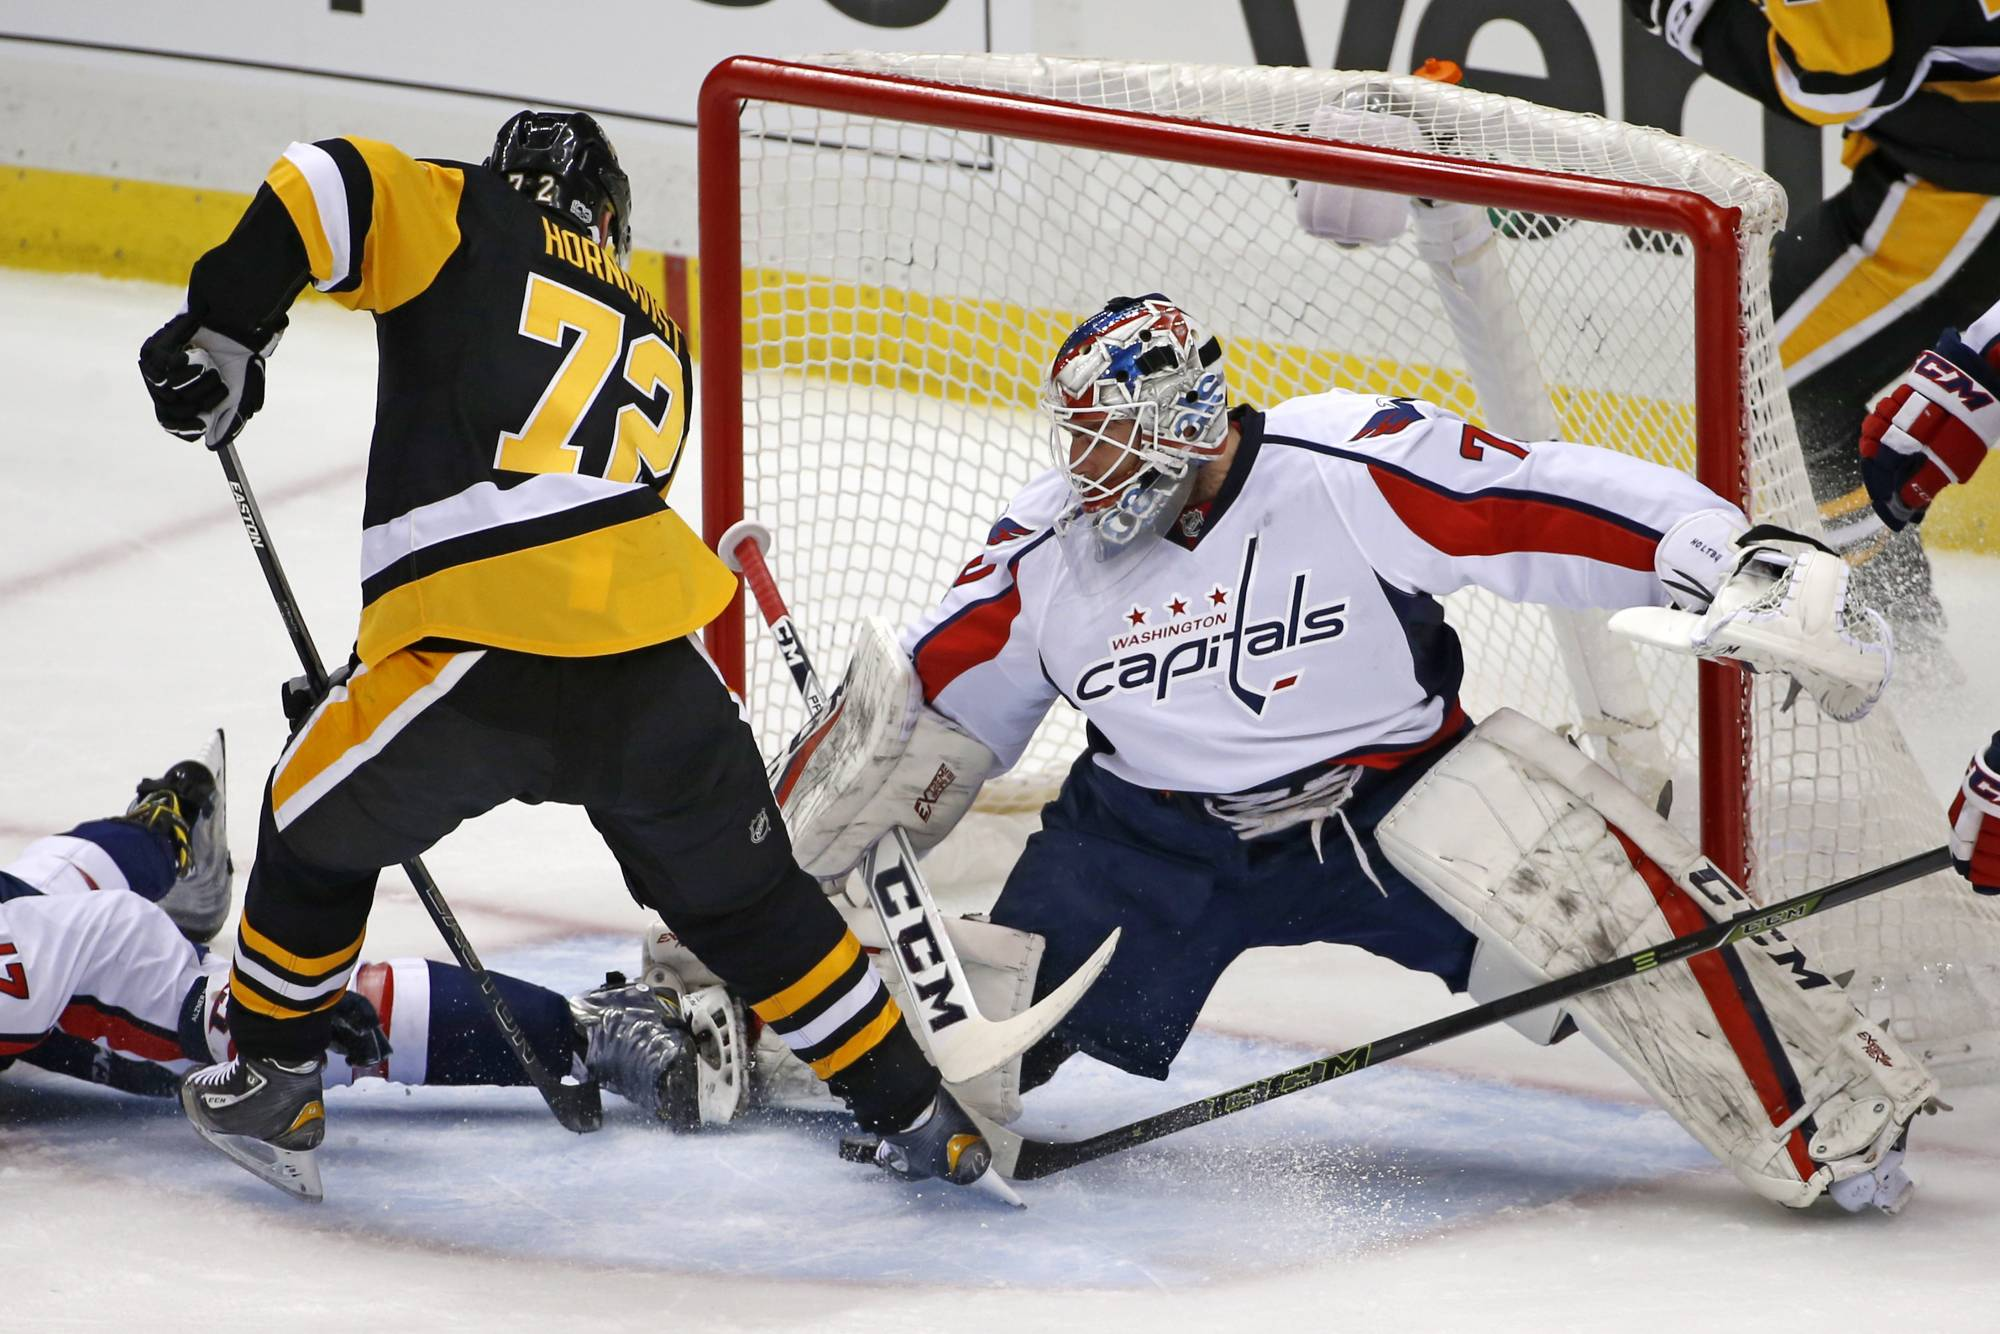 Penguins halt Capitals' win streak at 9 in wild 8-7 victory